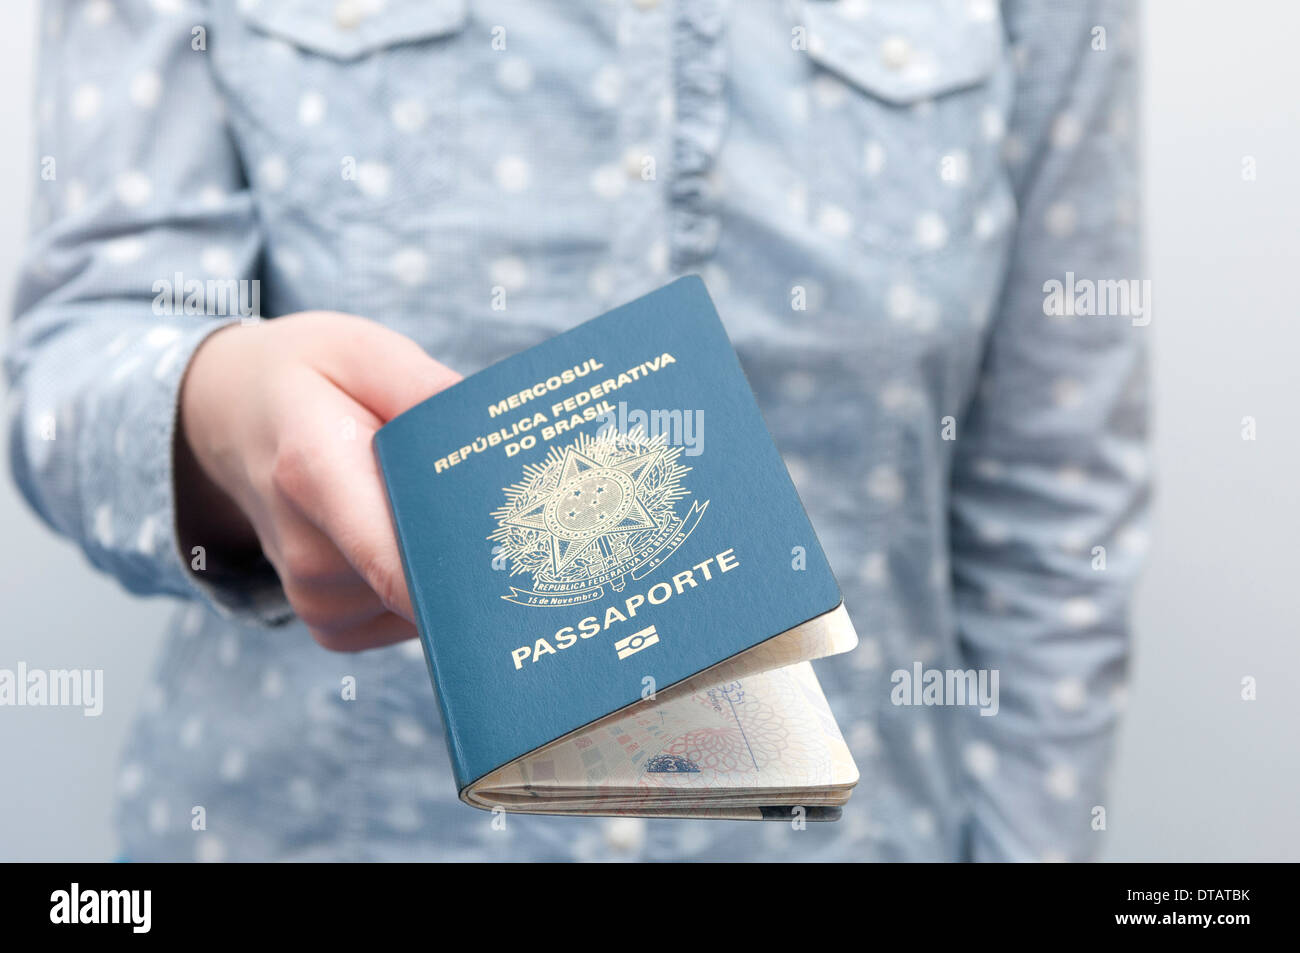 country of issuance for passport or travel document